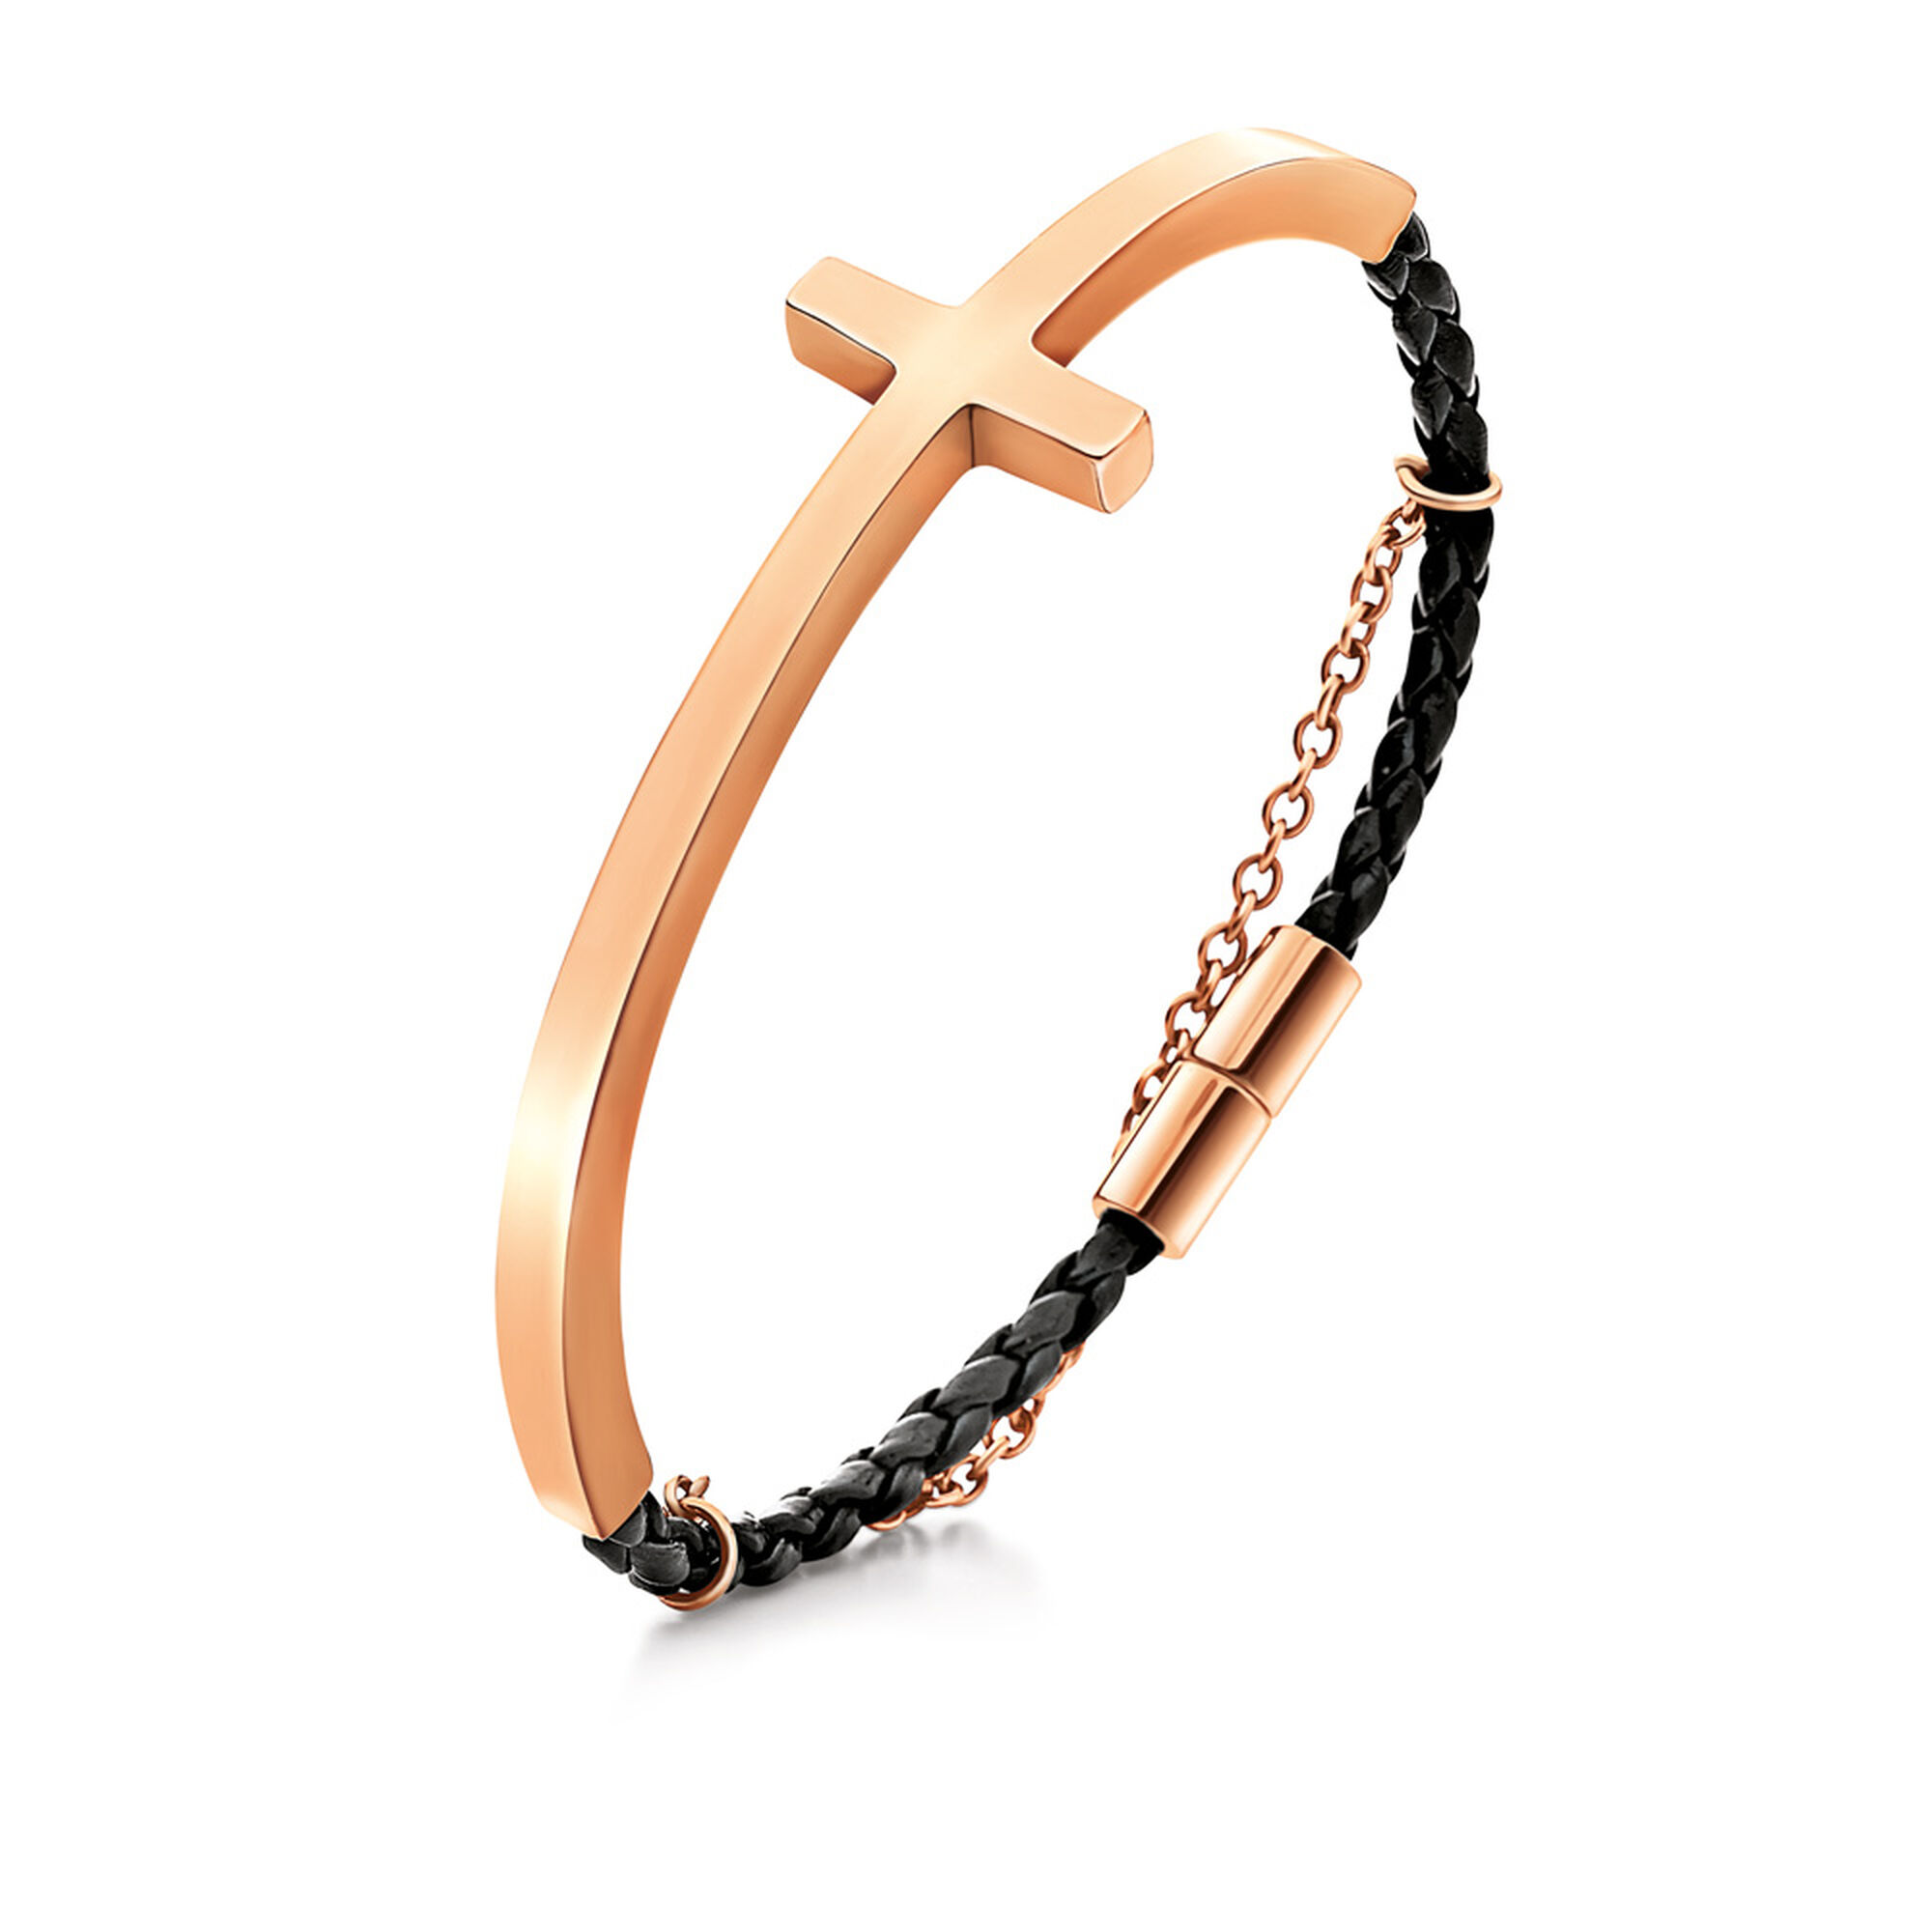 redbarry cubic tones item cross for wedding difines no classic thin us girls x bangle zirconia bangles inlaid bracelet women